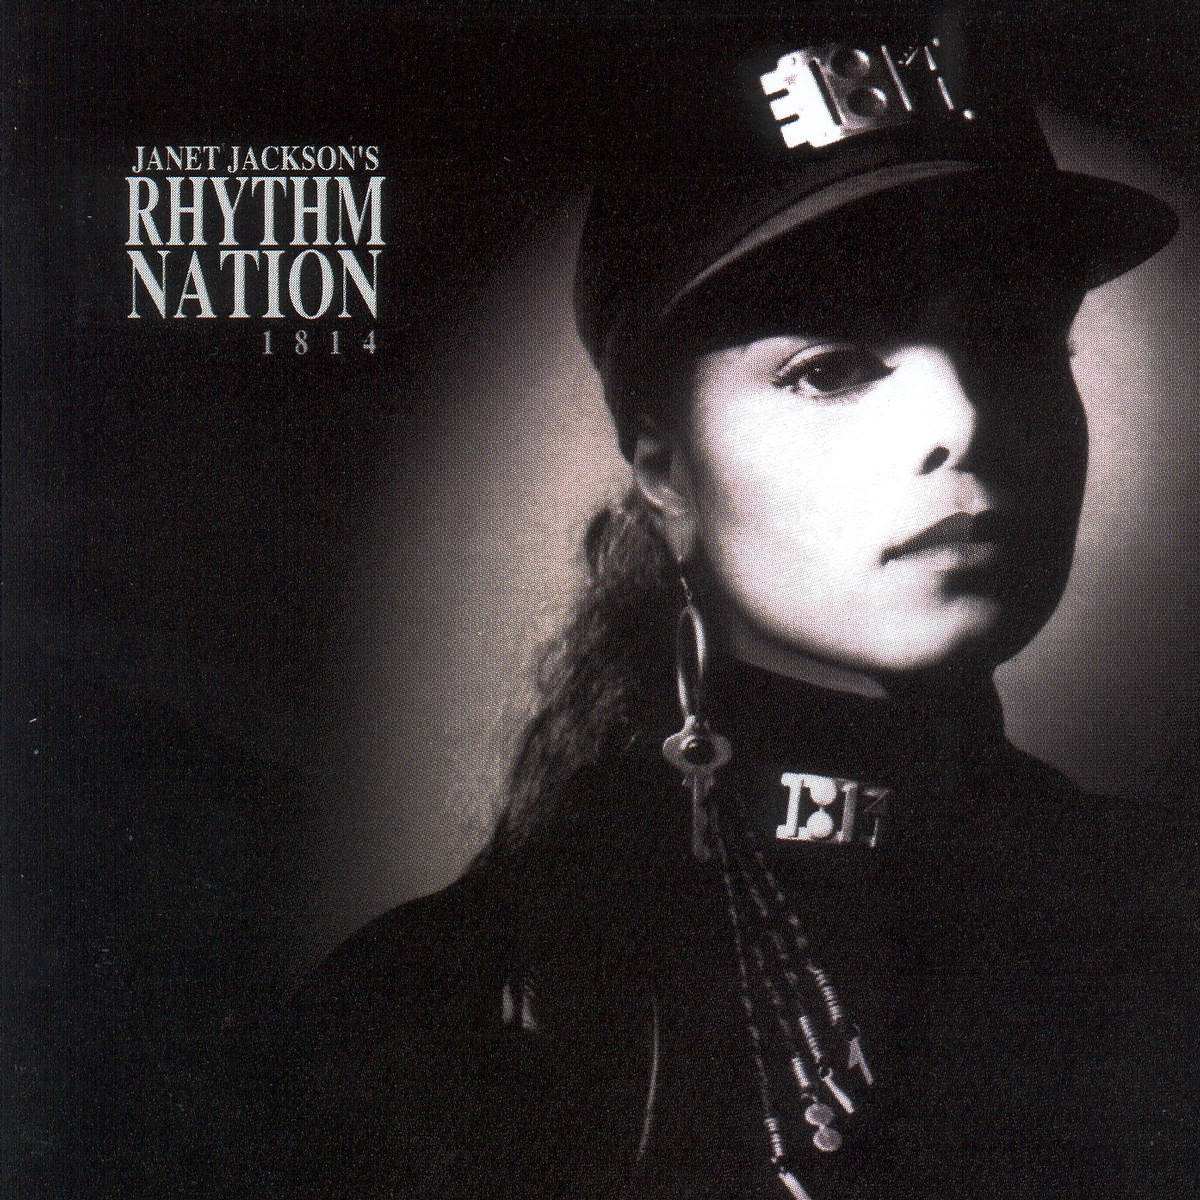 Janet Jackson Rhythm Nation 1814 Album Title Meaning